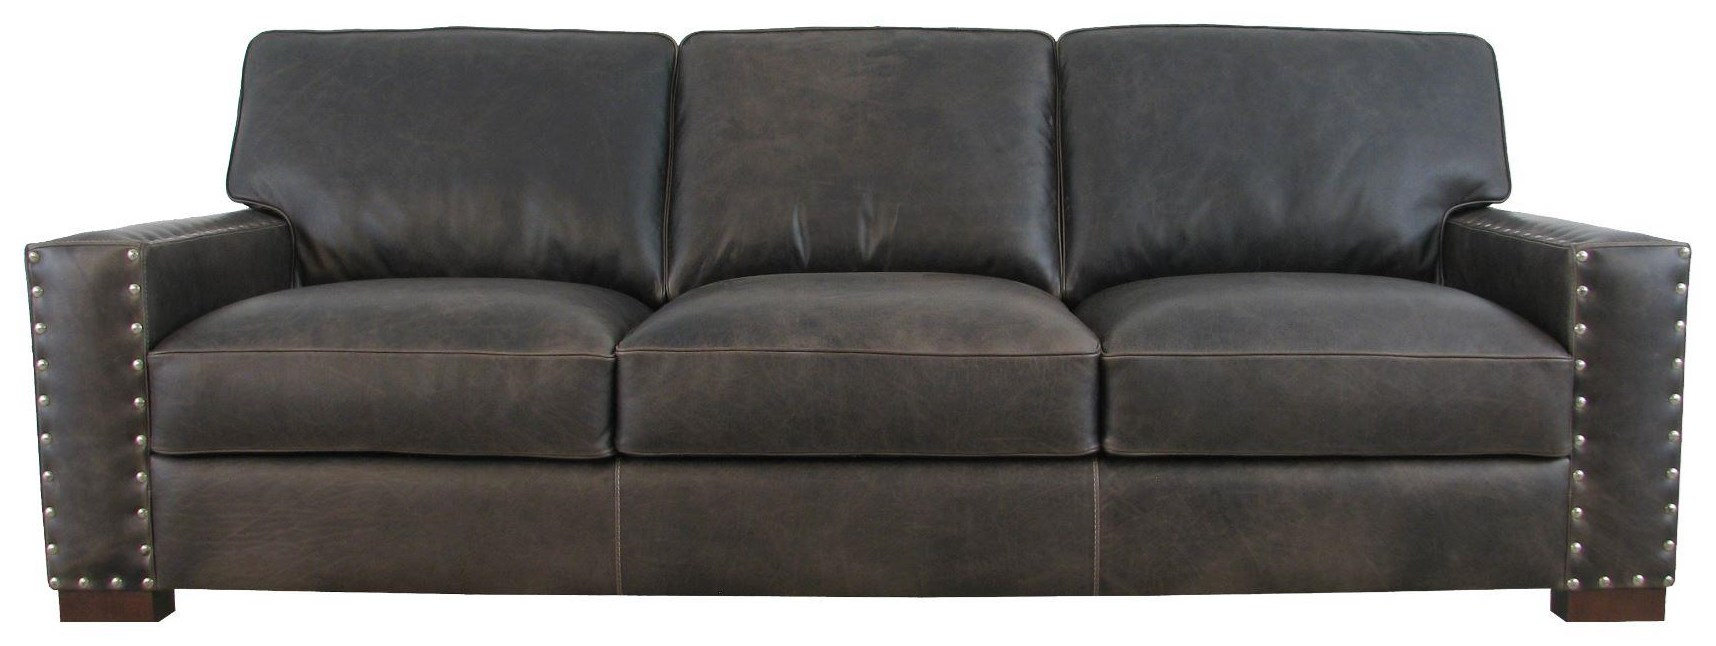 7594 Italian Leather Sofa by Giovanni Leather at Sprintz Furniture